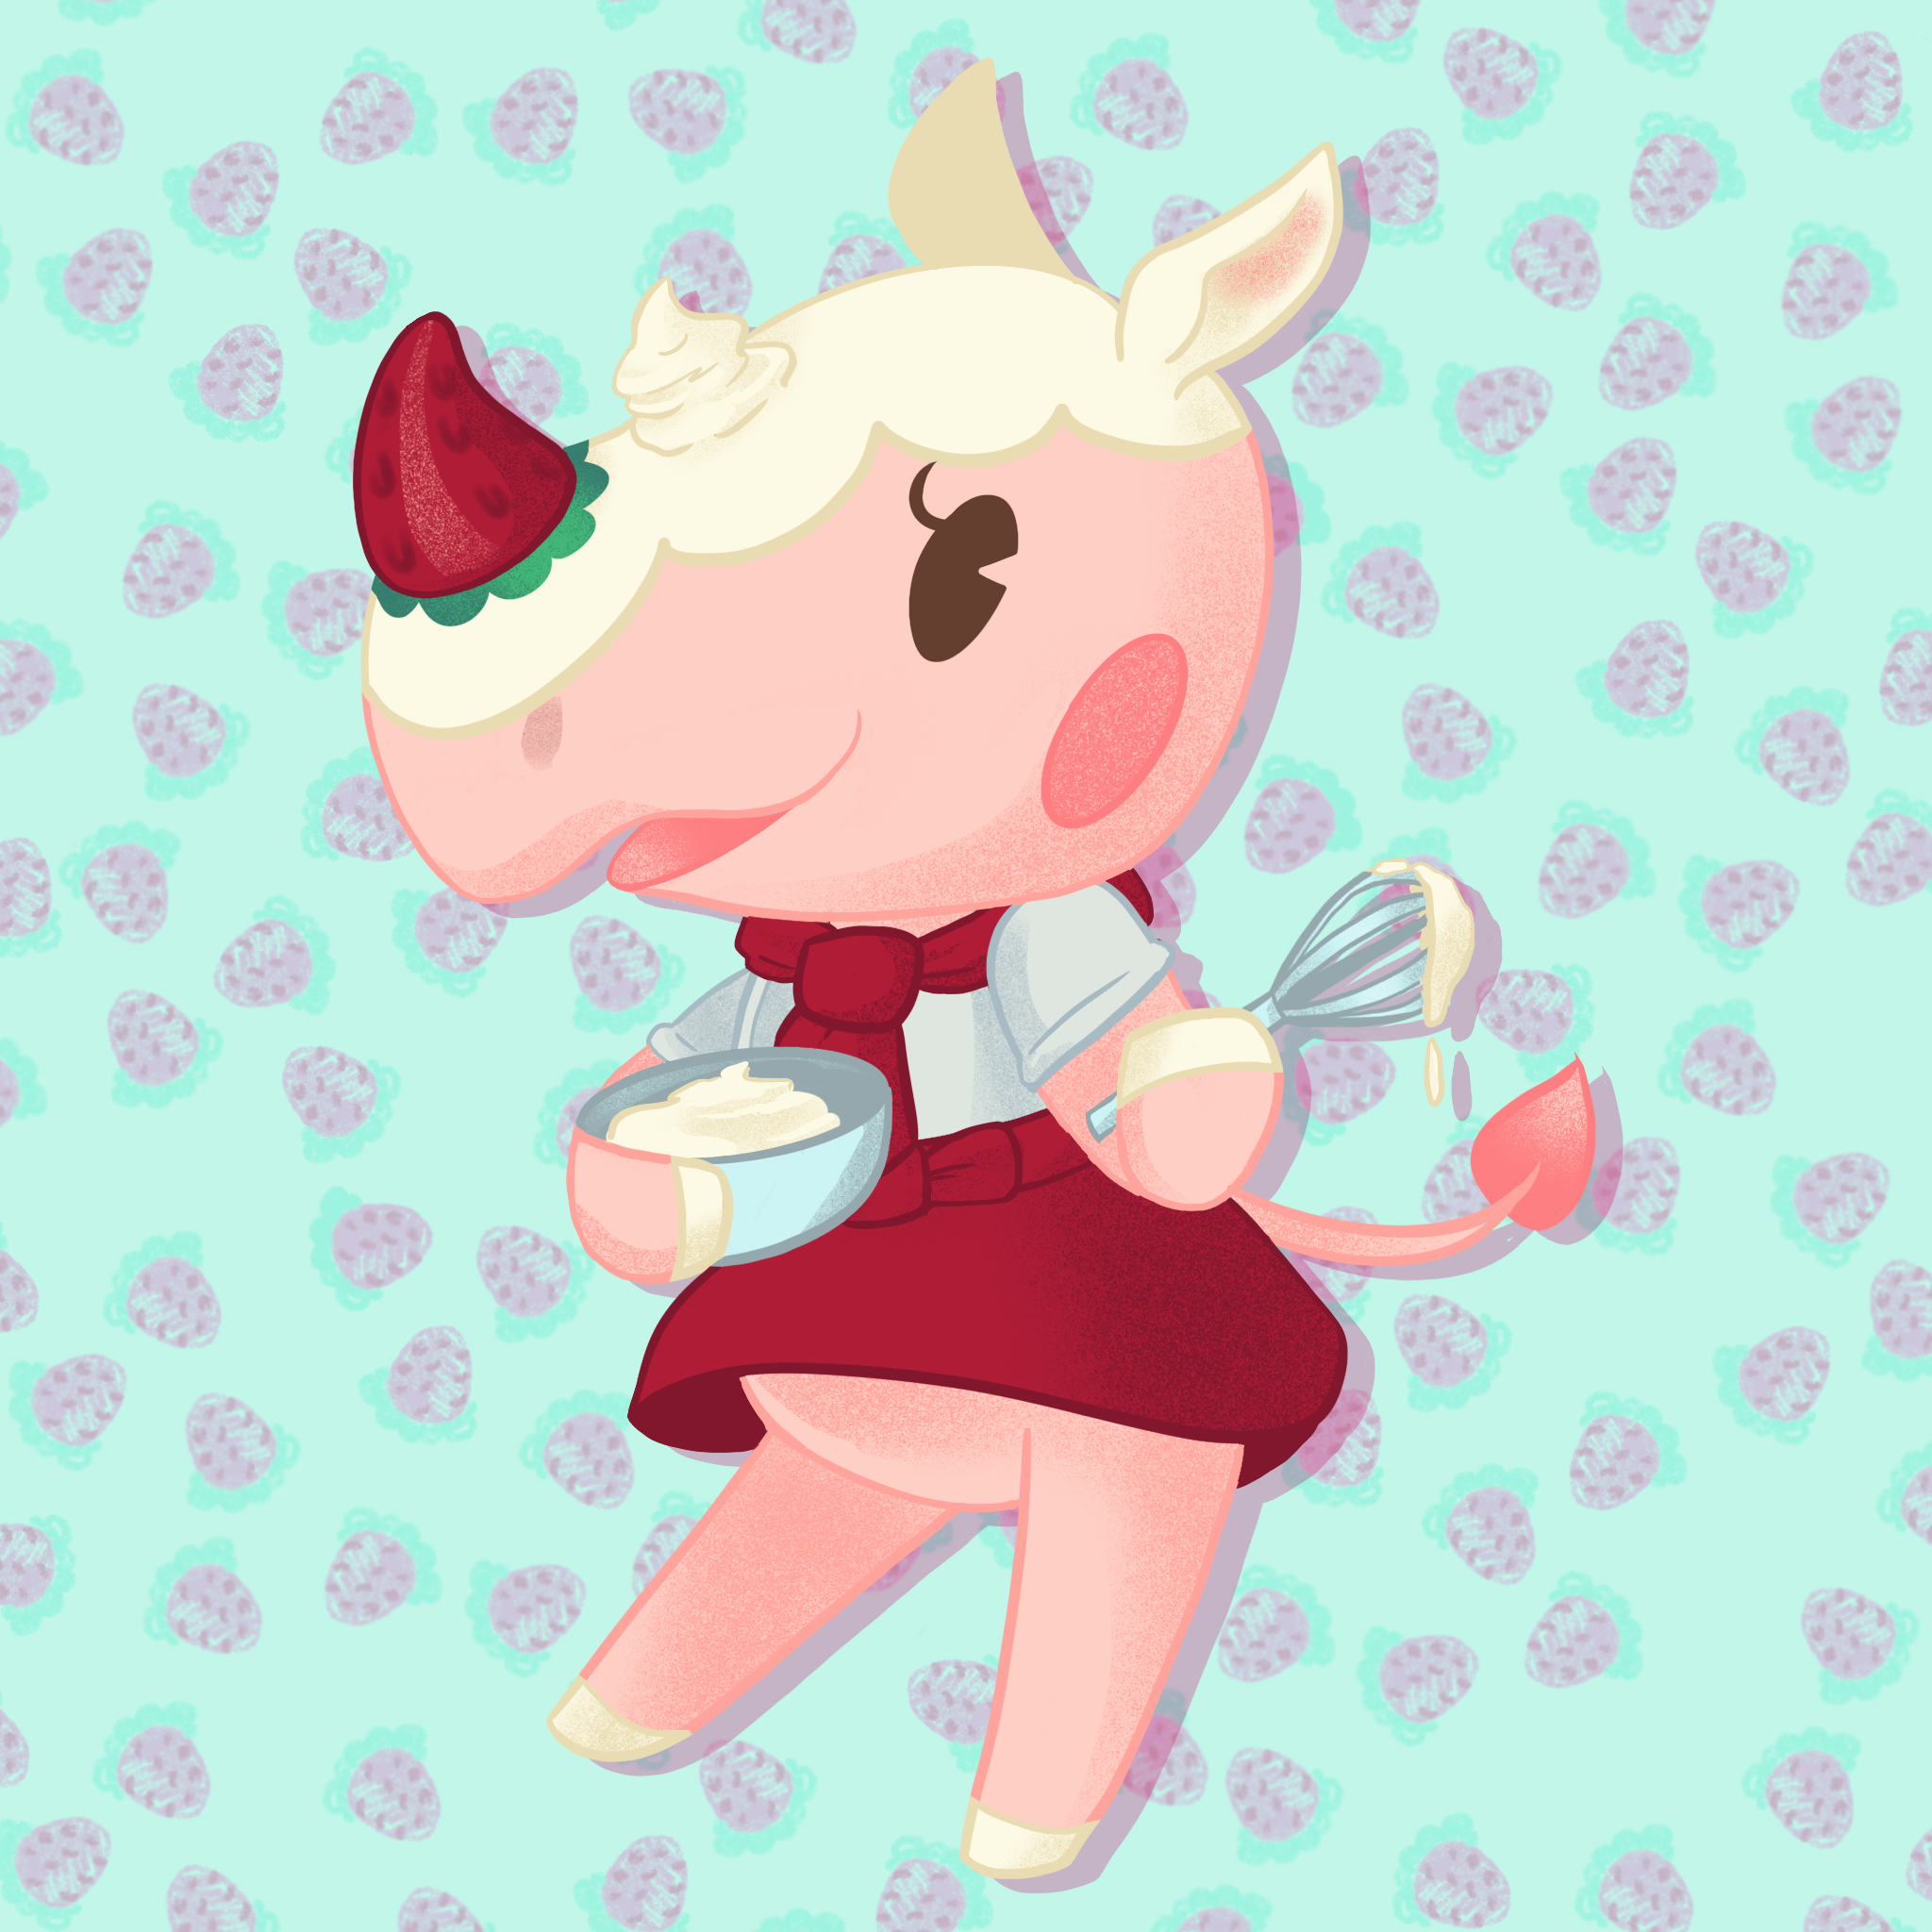 Merangue - Animal Crossing